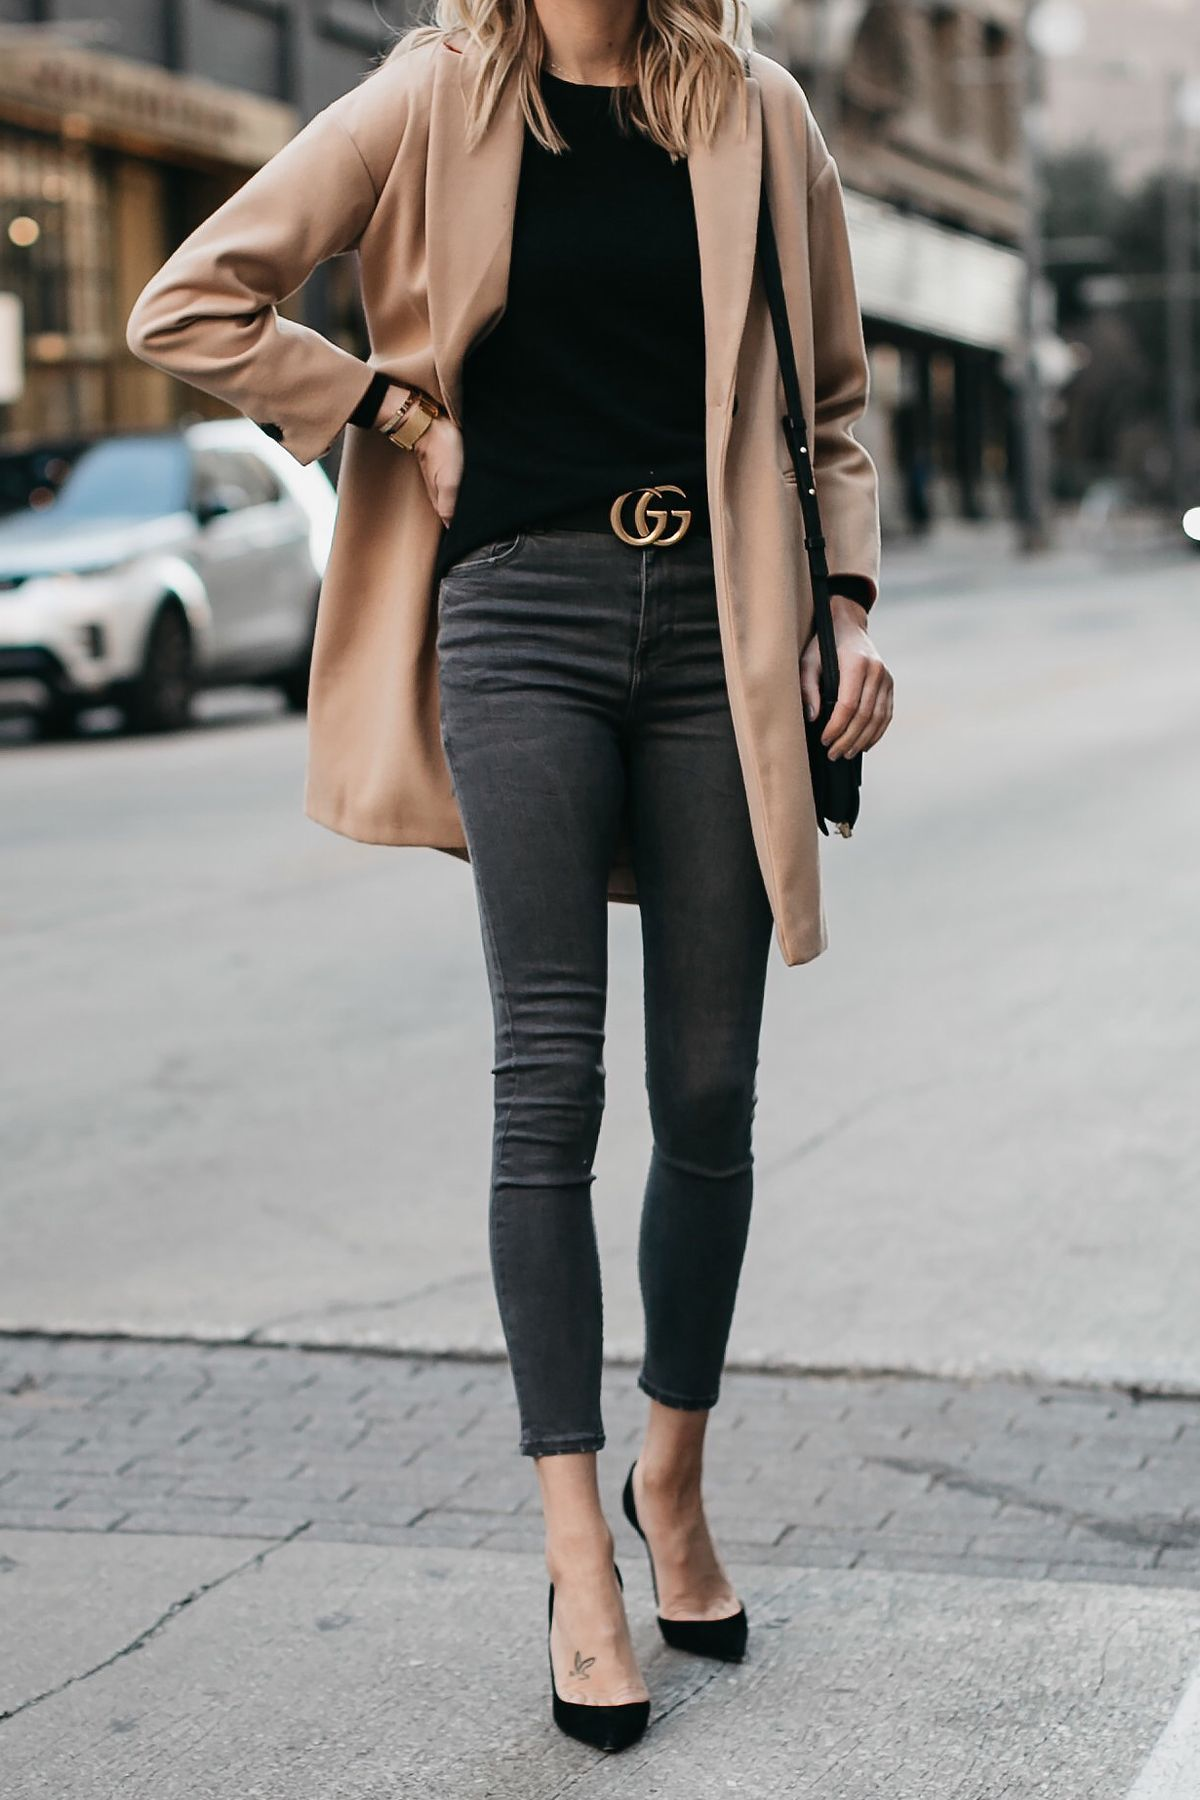 330eae8b6ba1 Topshop Camel Coat Black Sweater Grey Skinny Jeans Gucci Marmont Belt  Christian Louboutin Black Pumps Fashion Jackson Dallas Blogger Fashion  Blogger Street ...